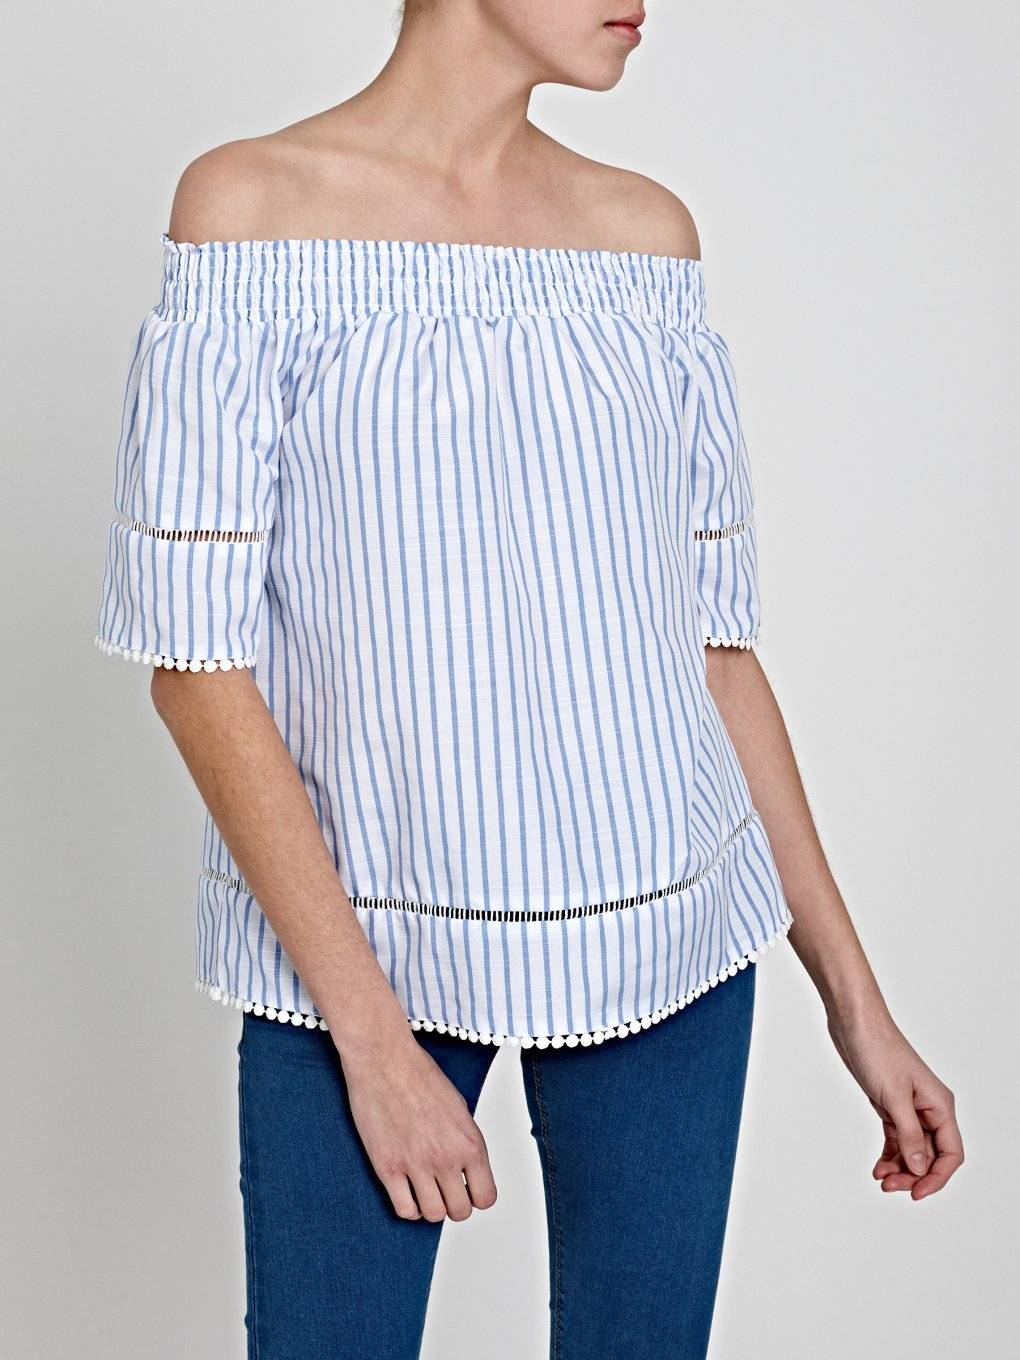 OFF-THE-SHOULDER STRIPED TOP WITH CROCHET DETAILS